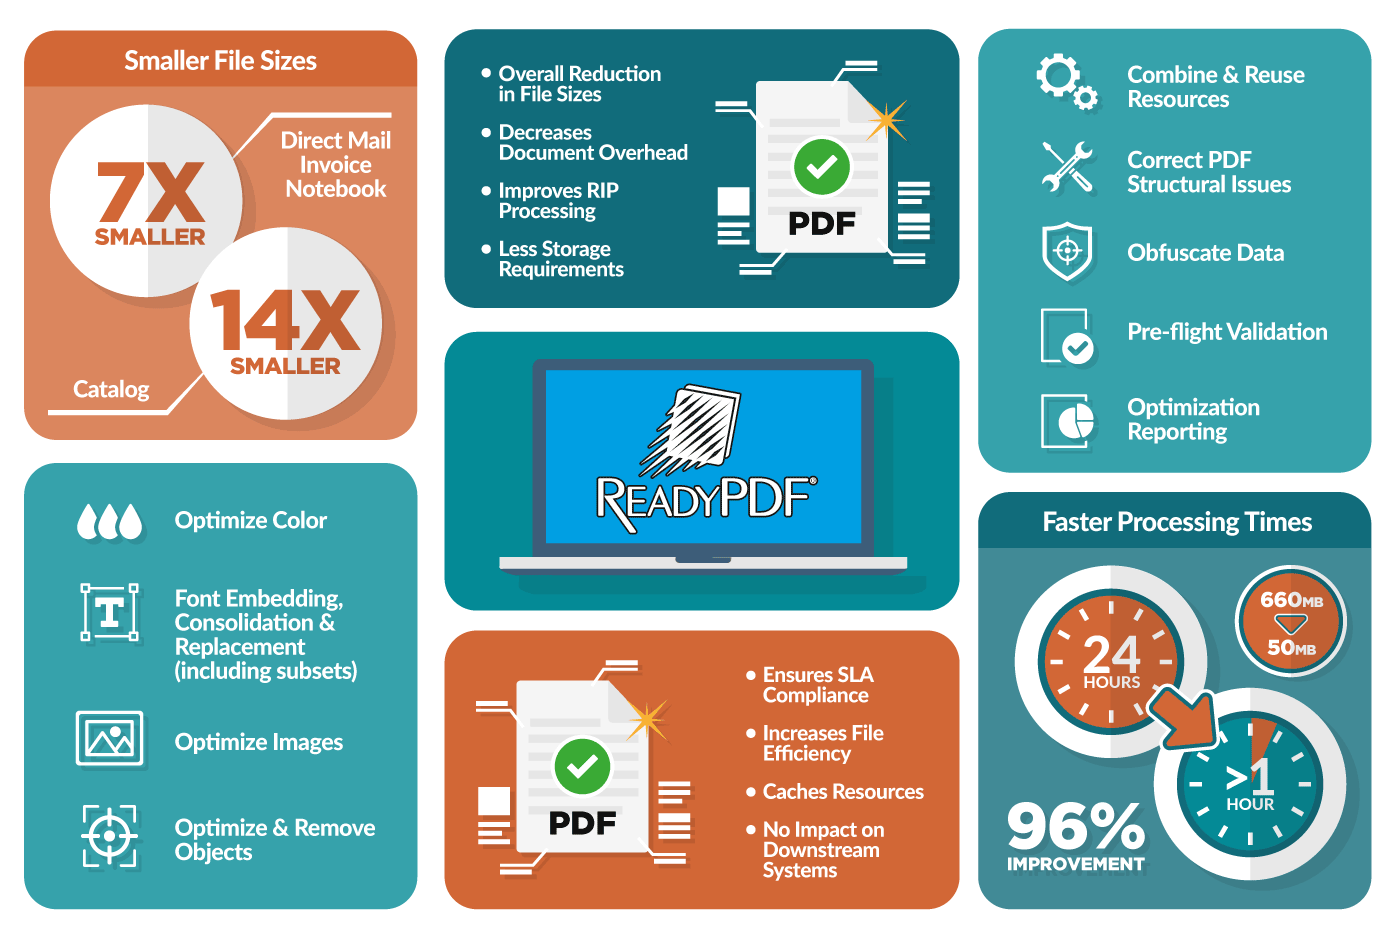 ReadyPDF KPI Press Release